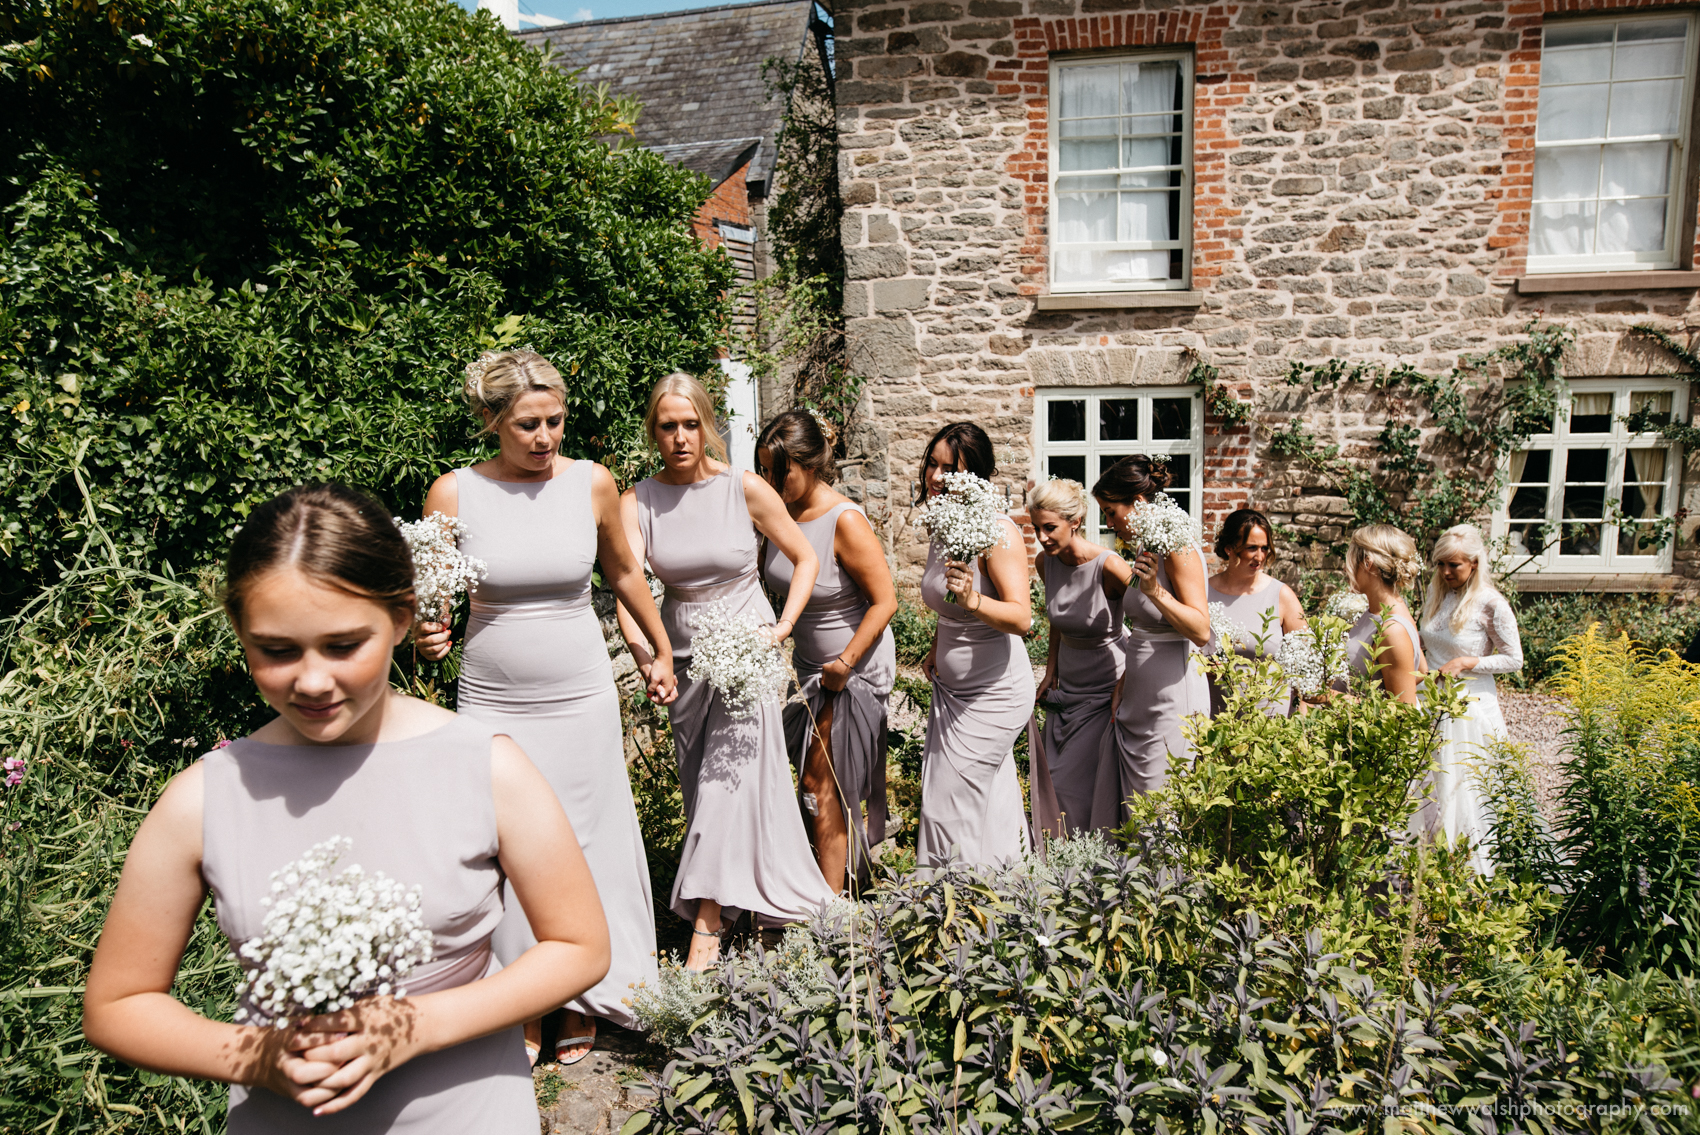 A long line of bridesmaids prepare to walk through the rose gardens